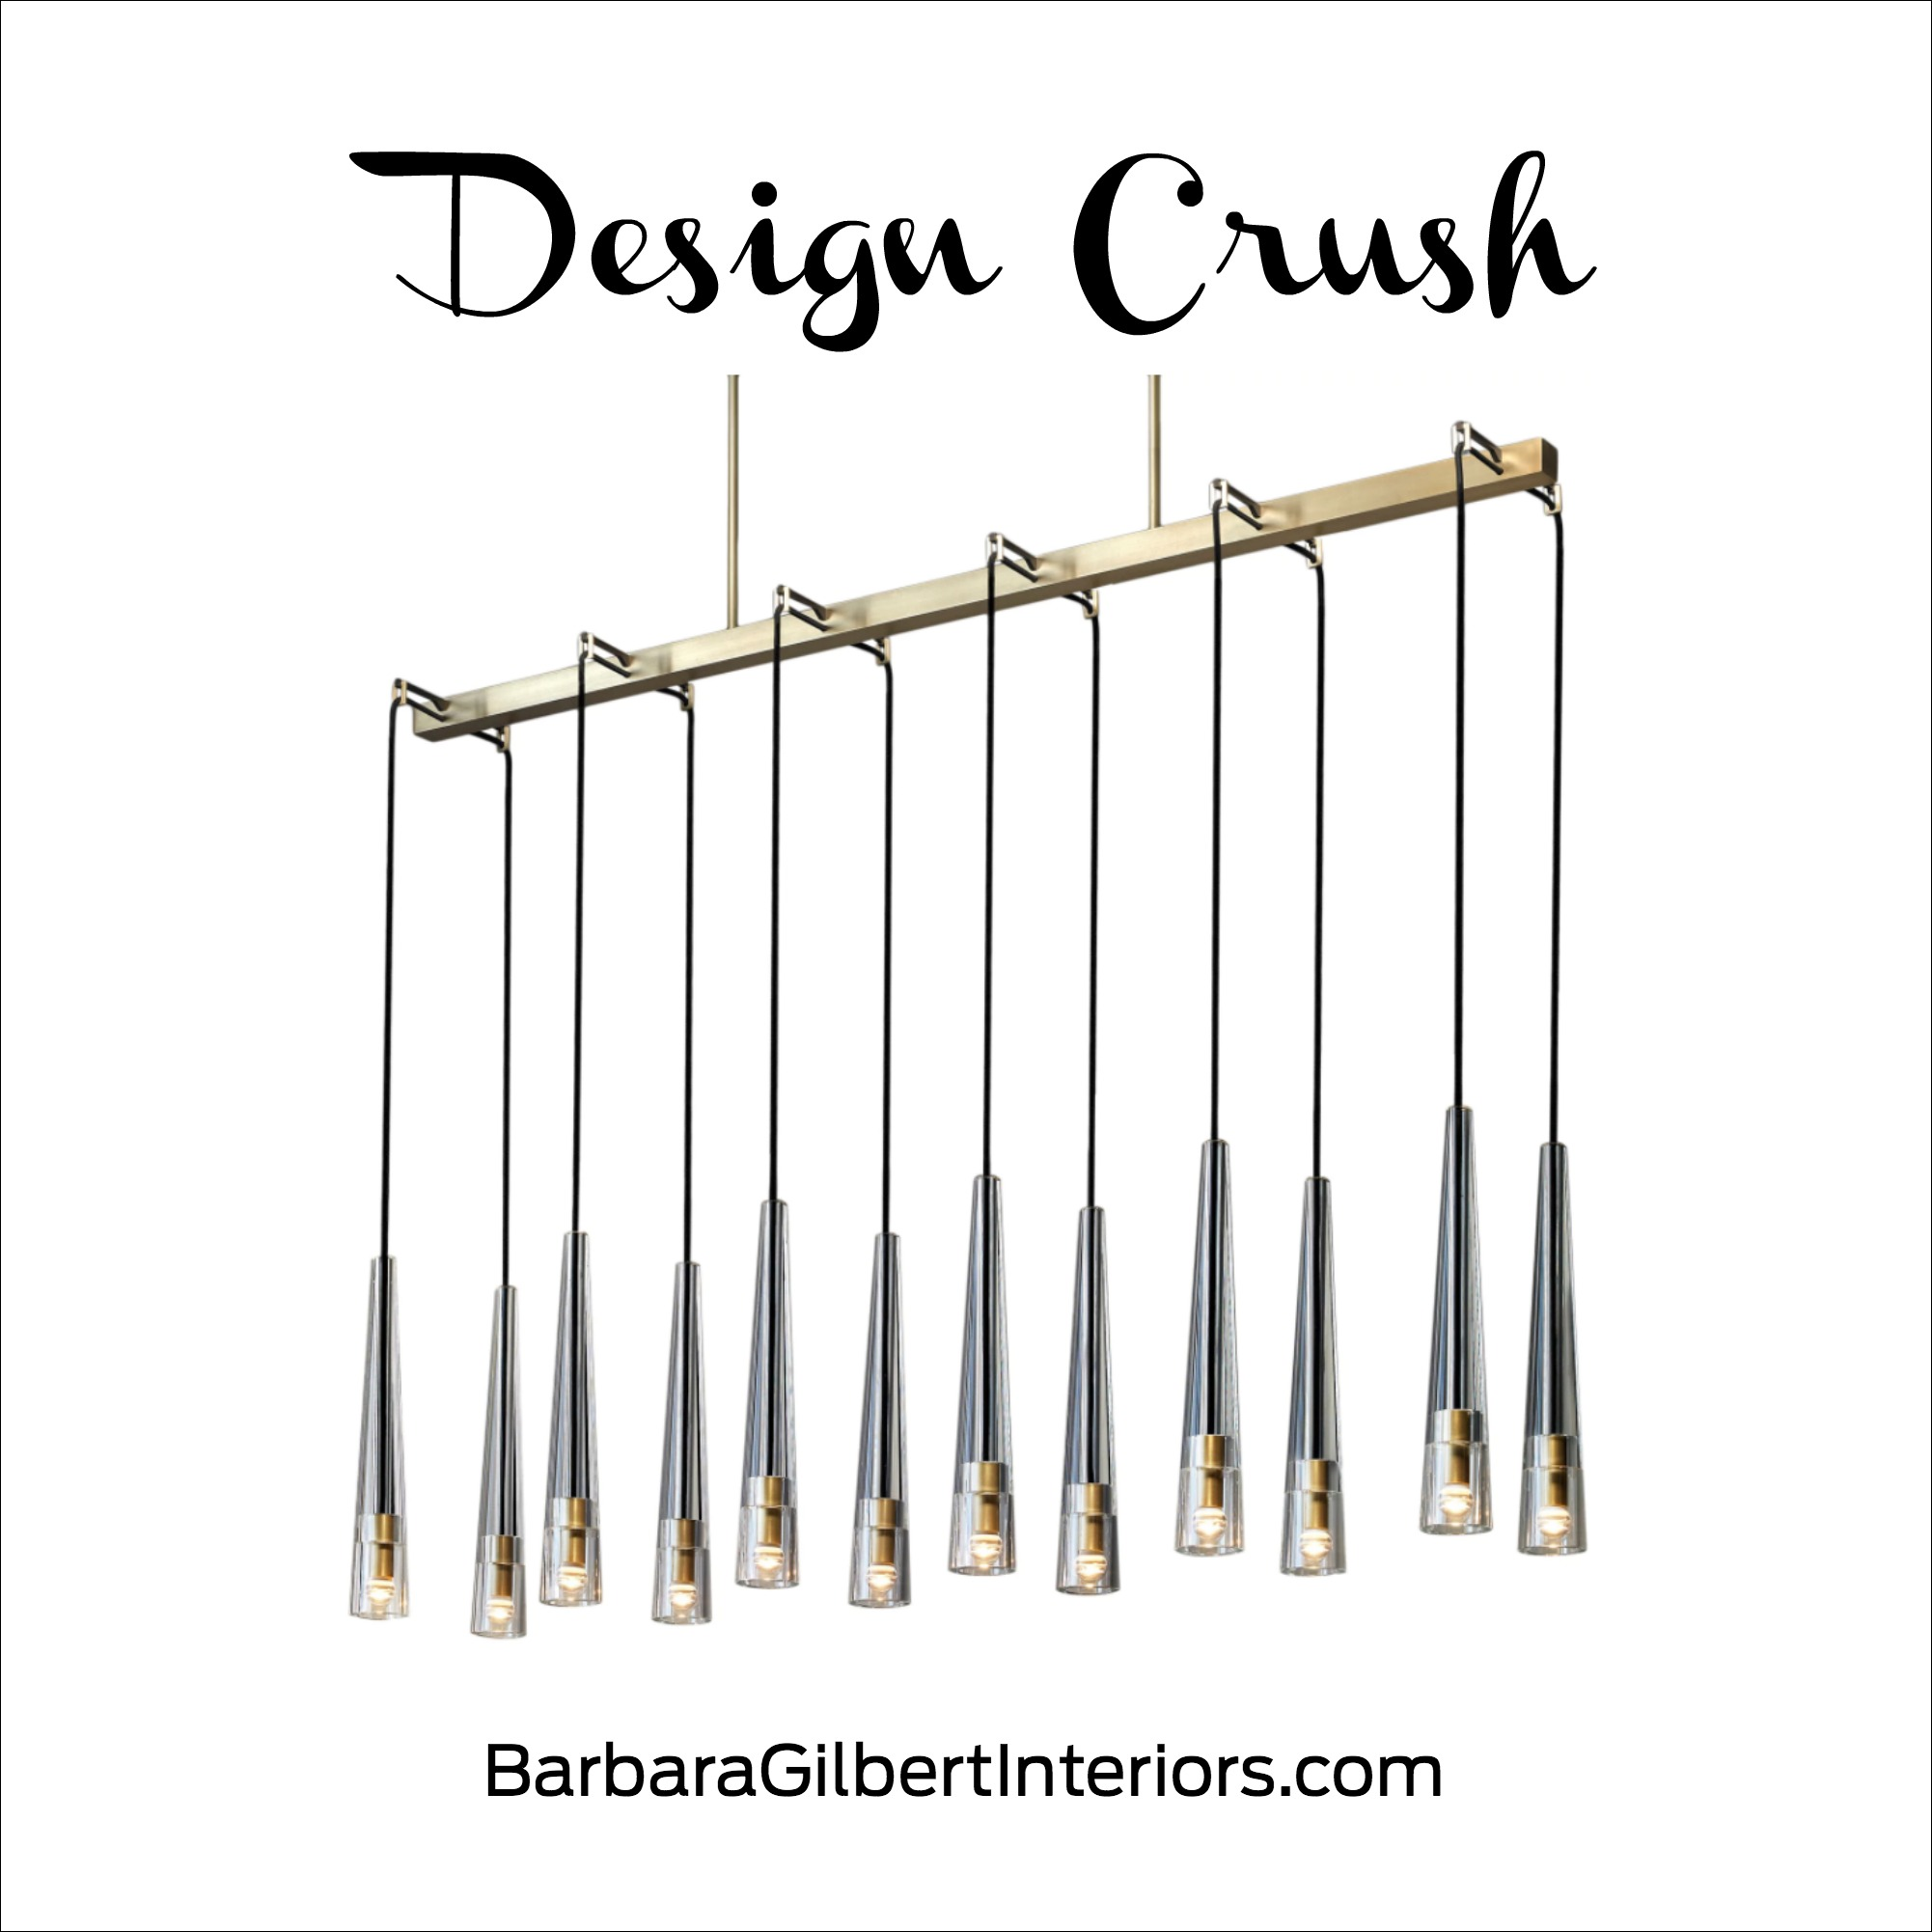 Design Crush: JBS Apollinaire Chandelier | Interior Design Dallas | Barbara Gilbert Interiors